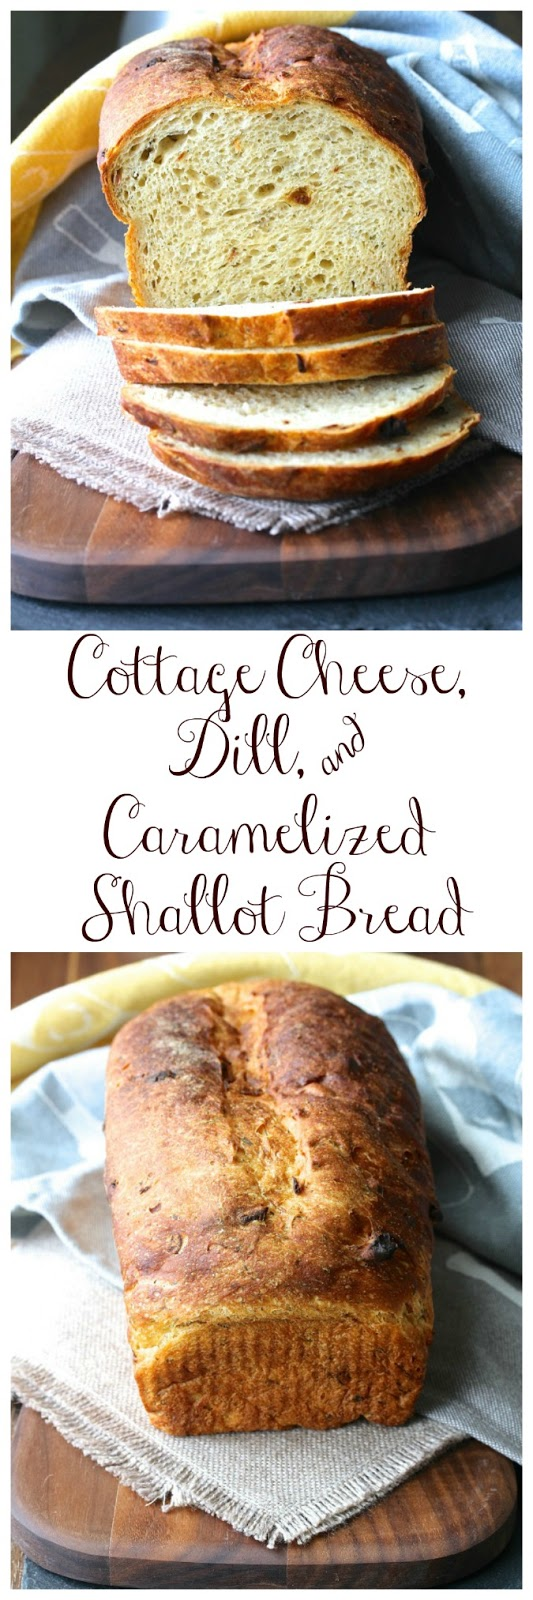 Cottage Cheese, Dill, and Caramelized Shallot Bread